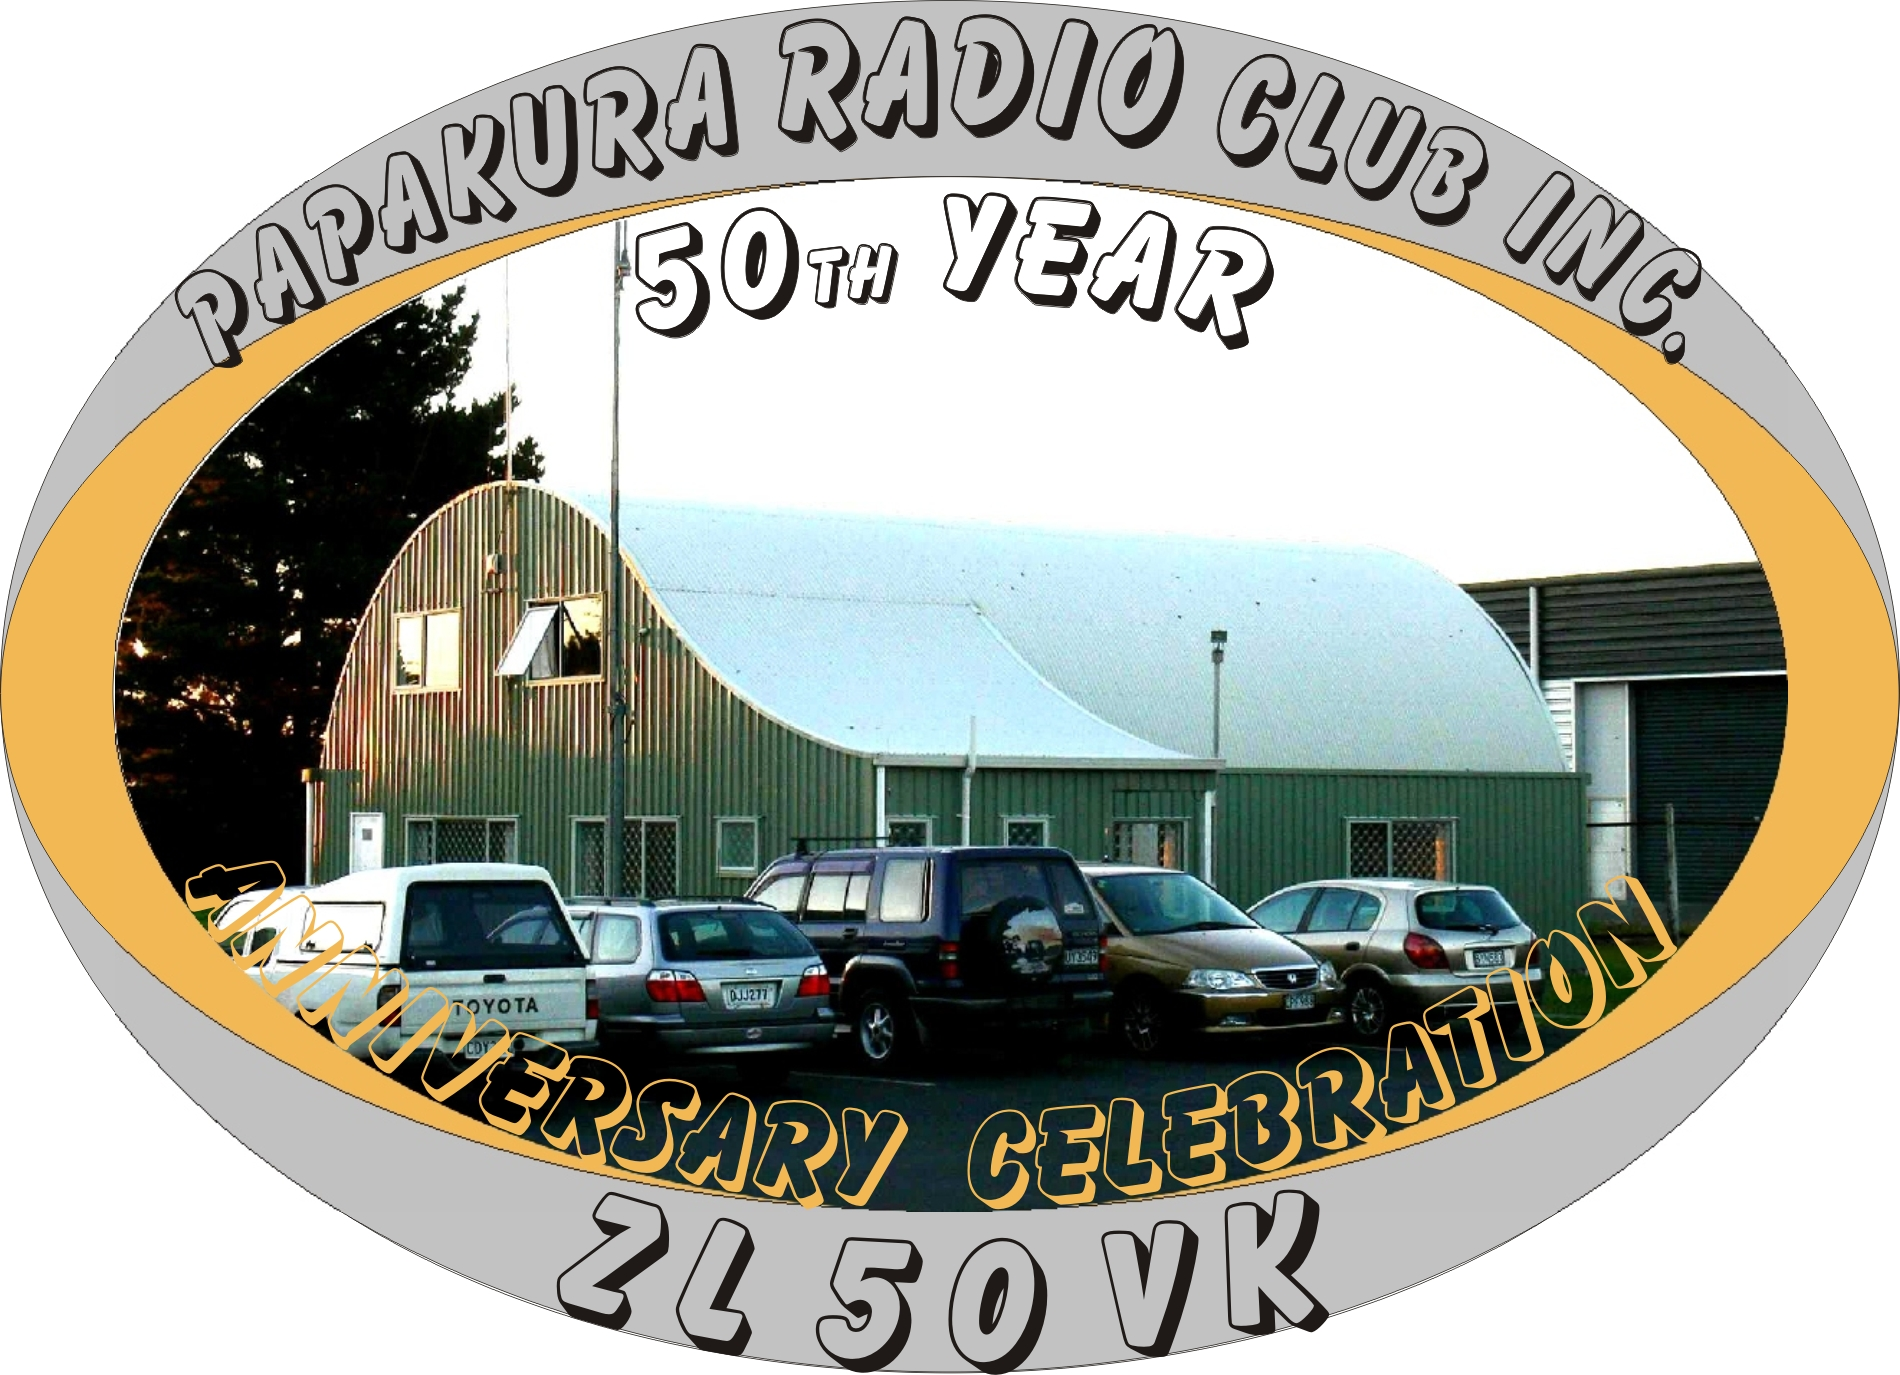 Our Papakura Radio Club inc. building